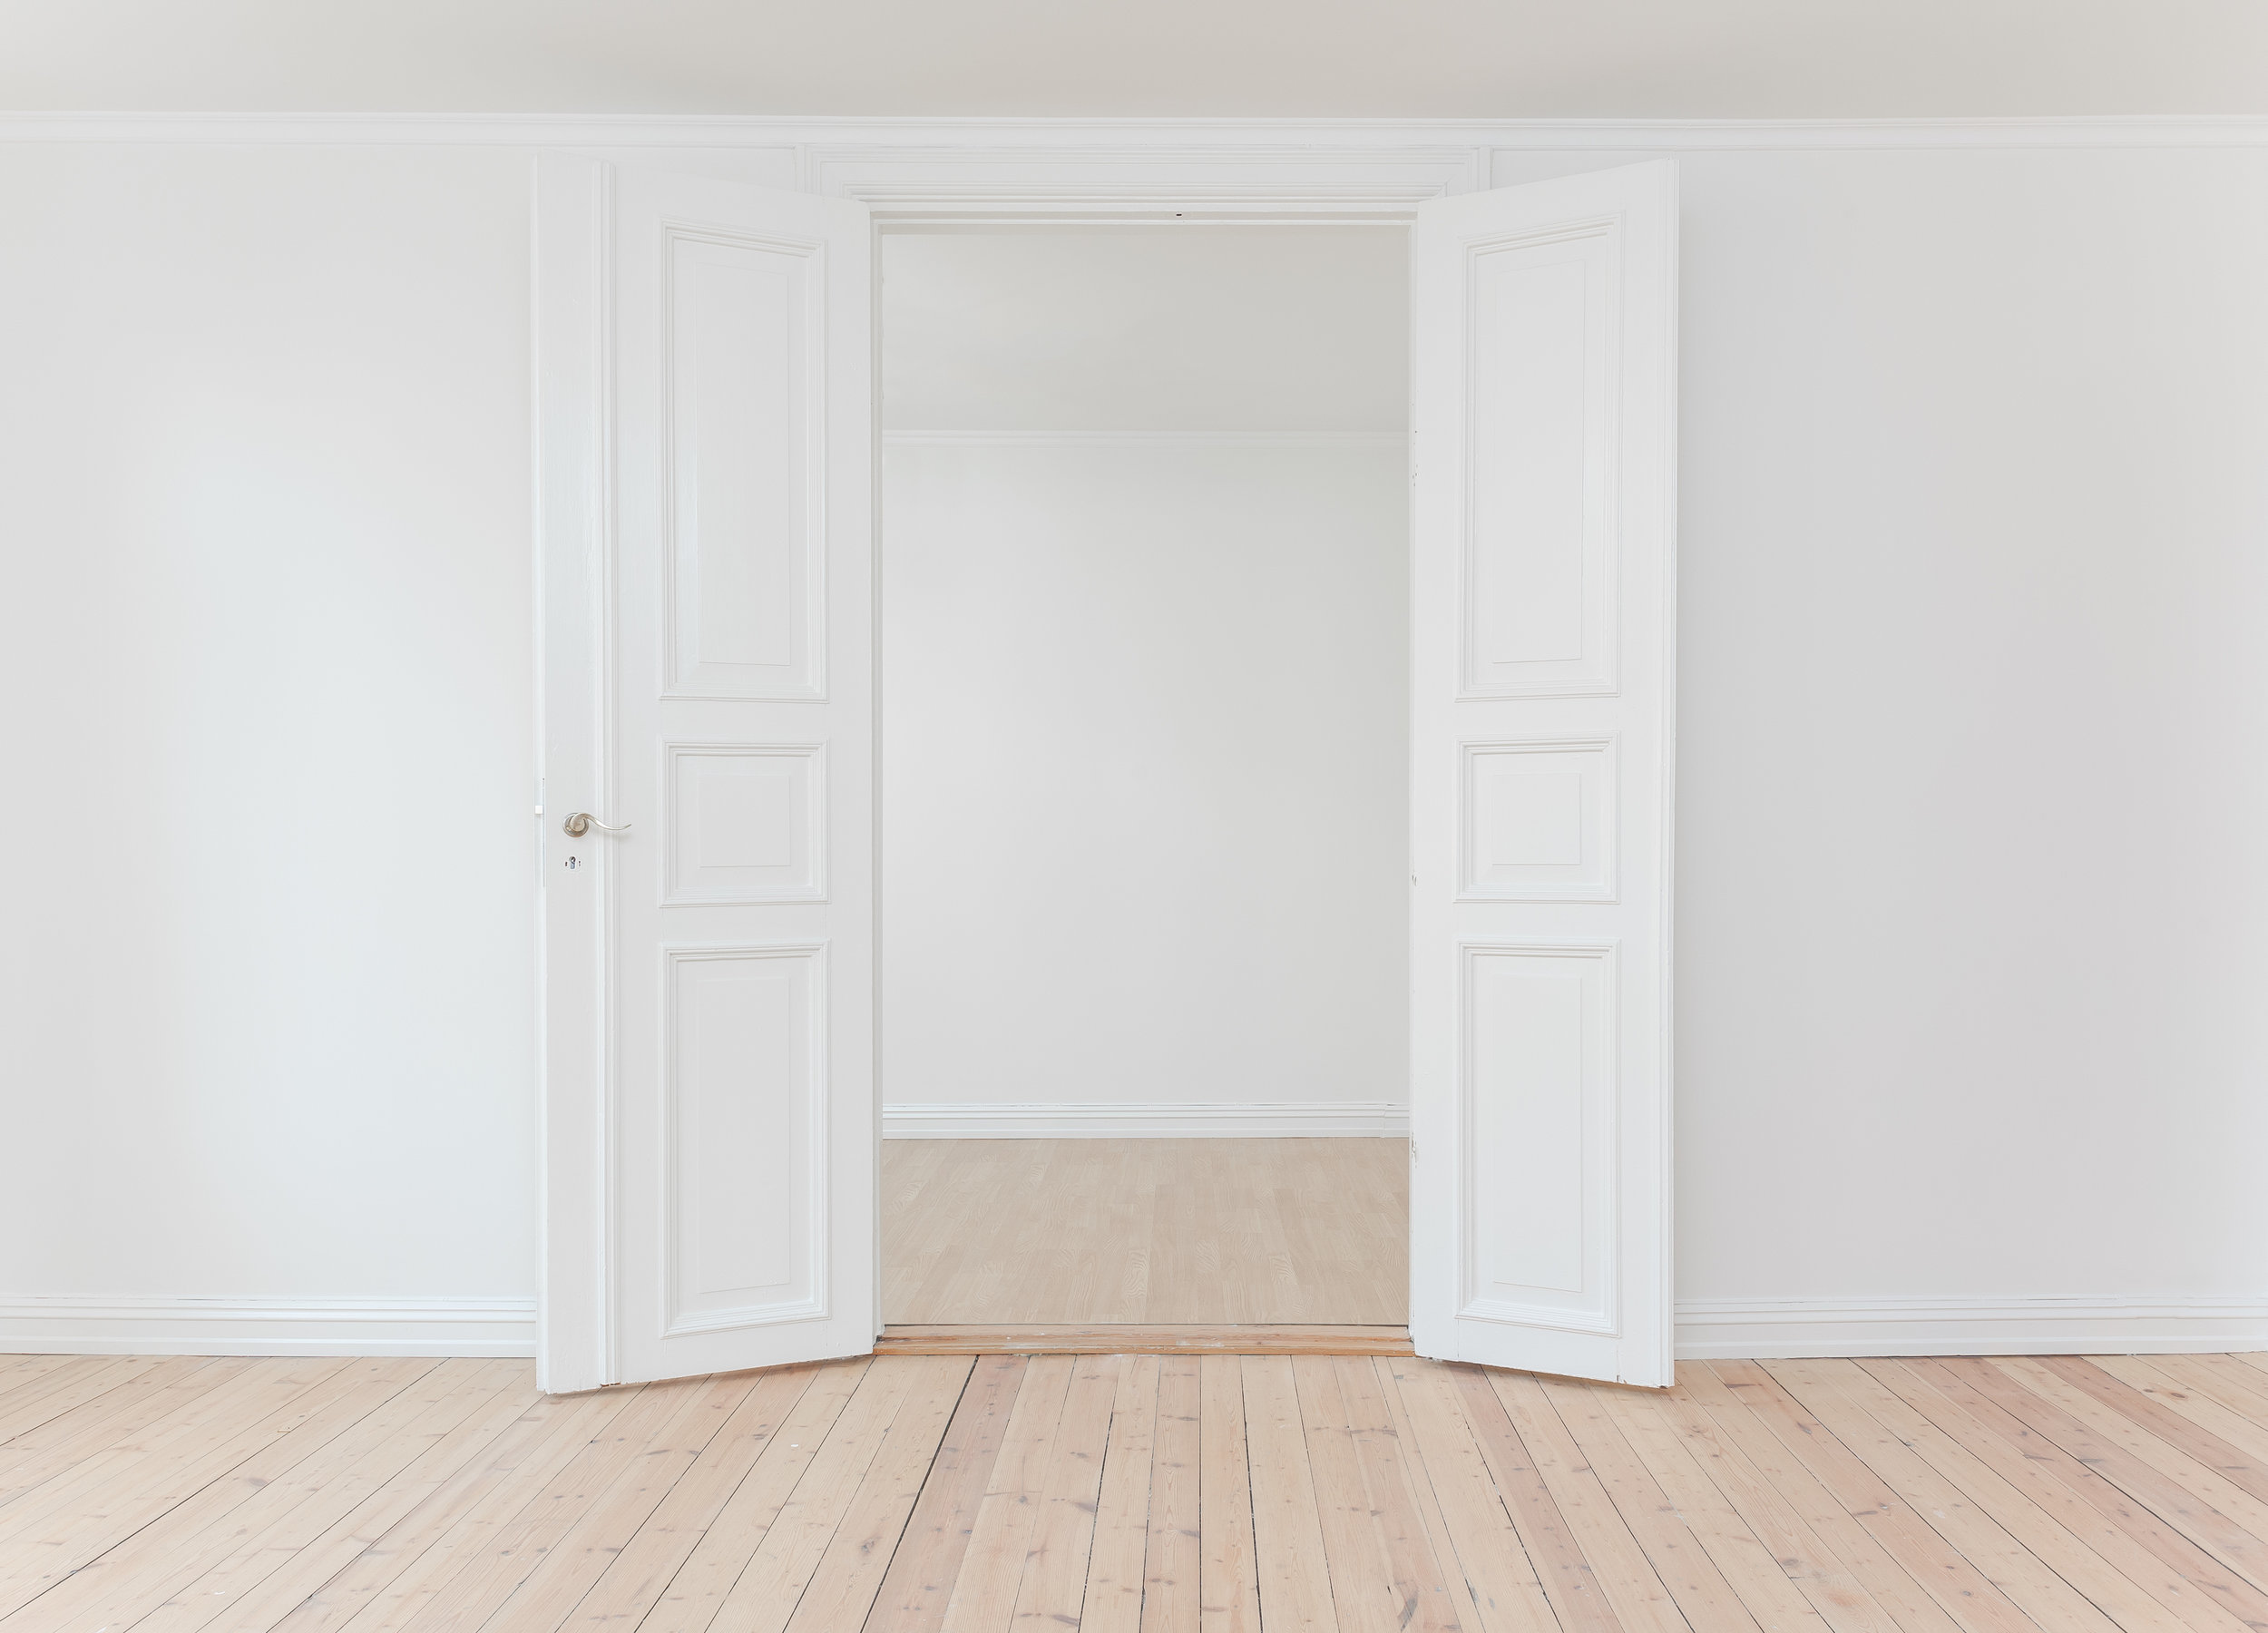 We're hiring - Let us open the door to your future. We're currently looking for professional Decorators on a Sub-Contracting basis to help us with a number of ongoing projects. We're looking for a decorator who has an eye for detail and a professional manner. Contact us for further information.